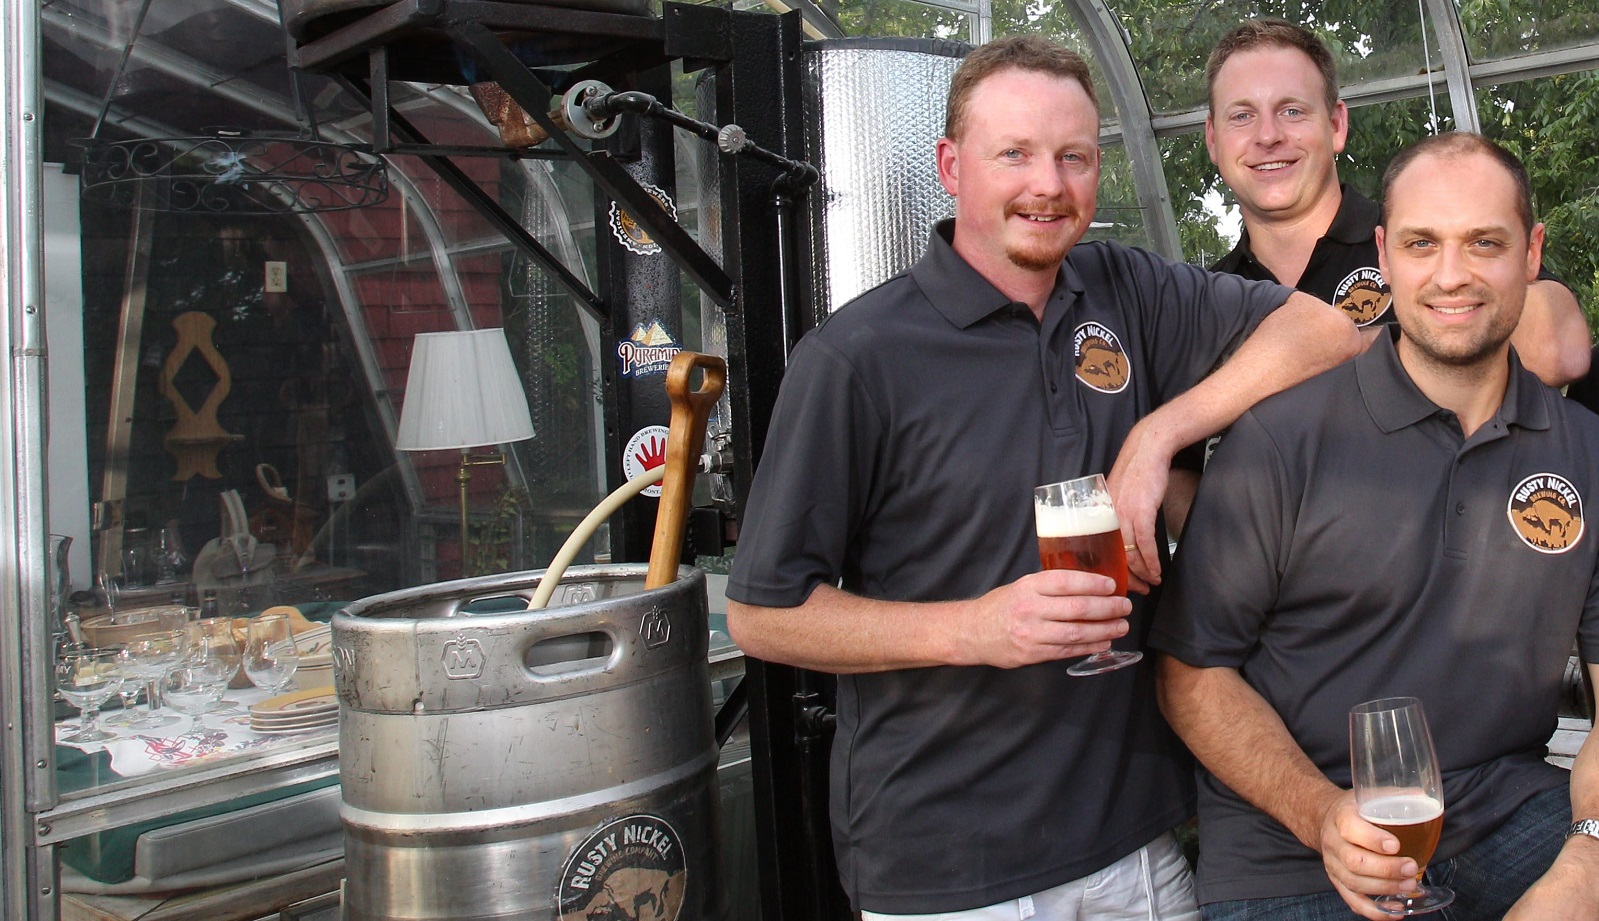 Four brewing enthusiasts have become partners in Rusty Nickel Brewing Co.  From left,  Dave Johnson, Jason Haven, Scott Fiege and Jim Ruppert.